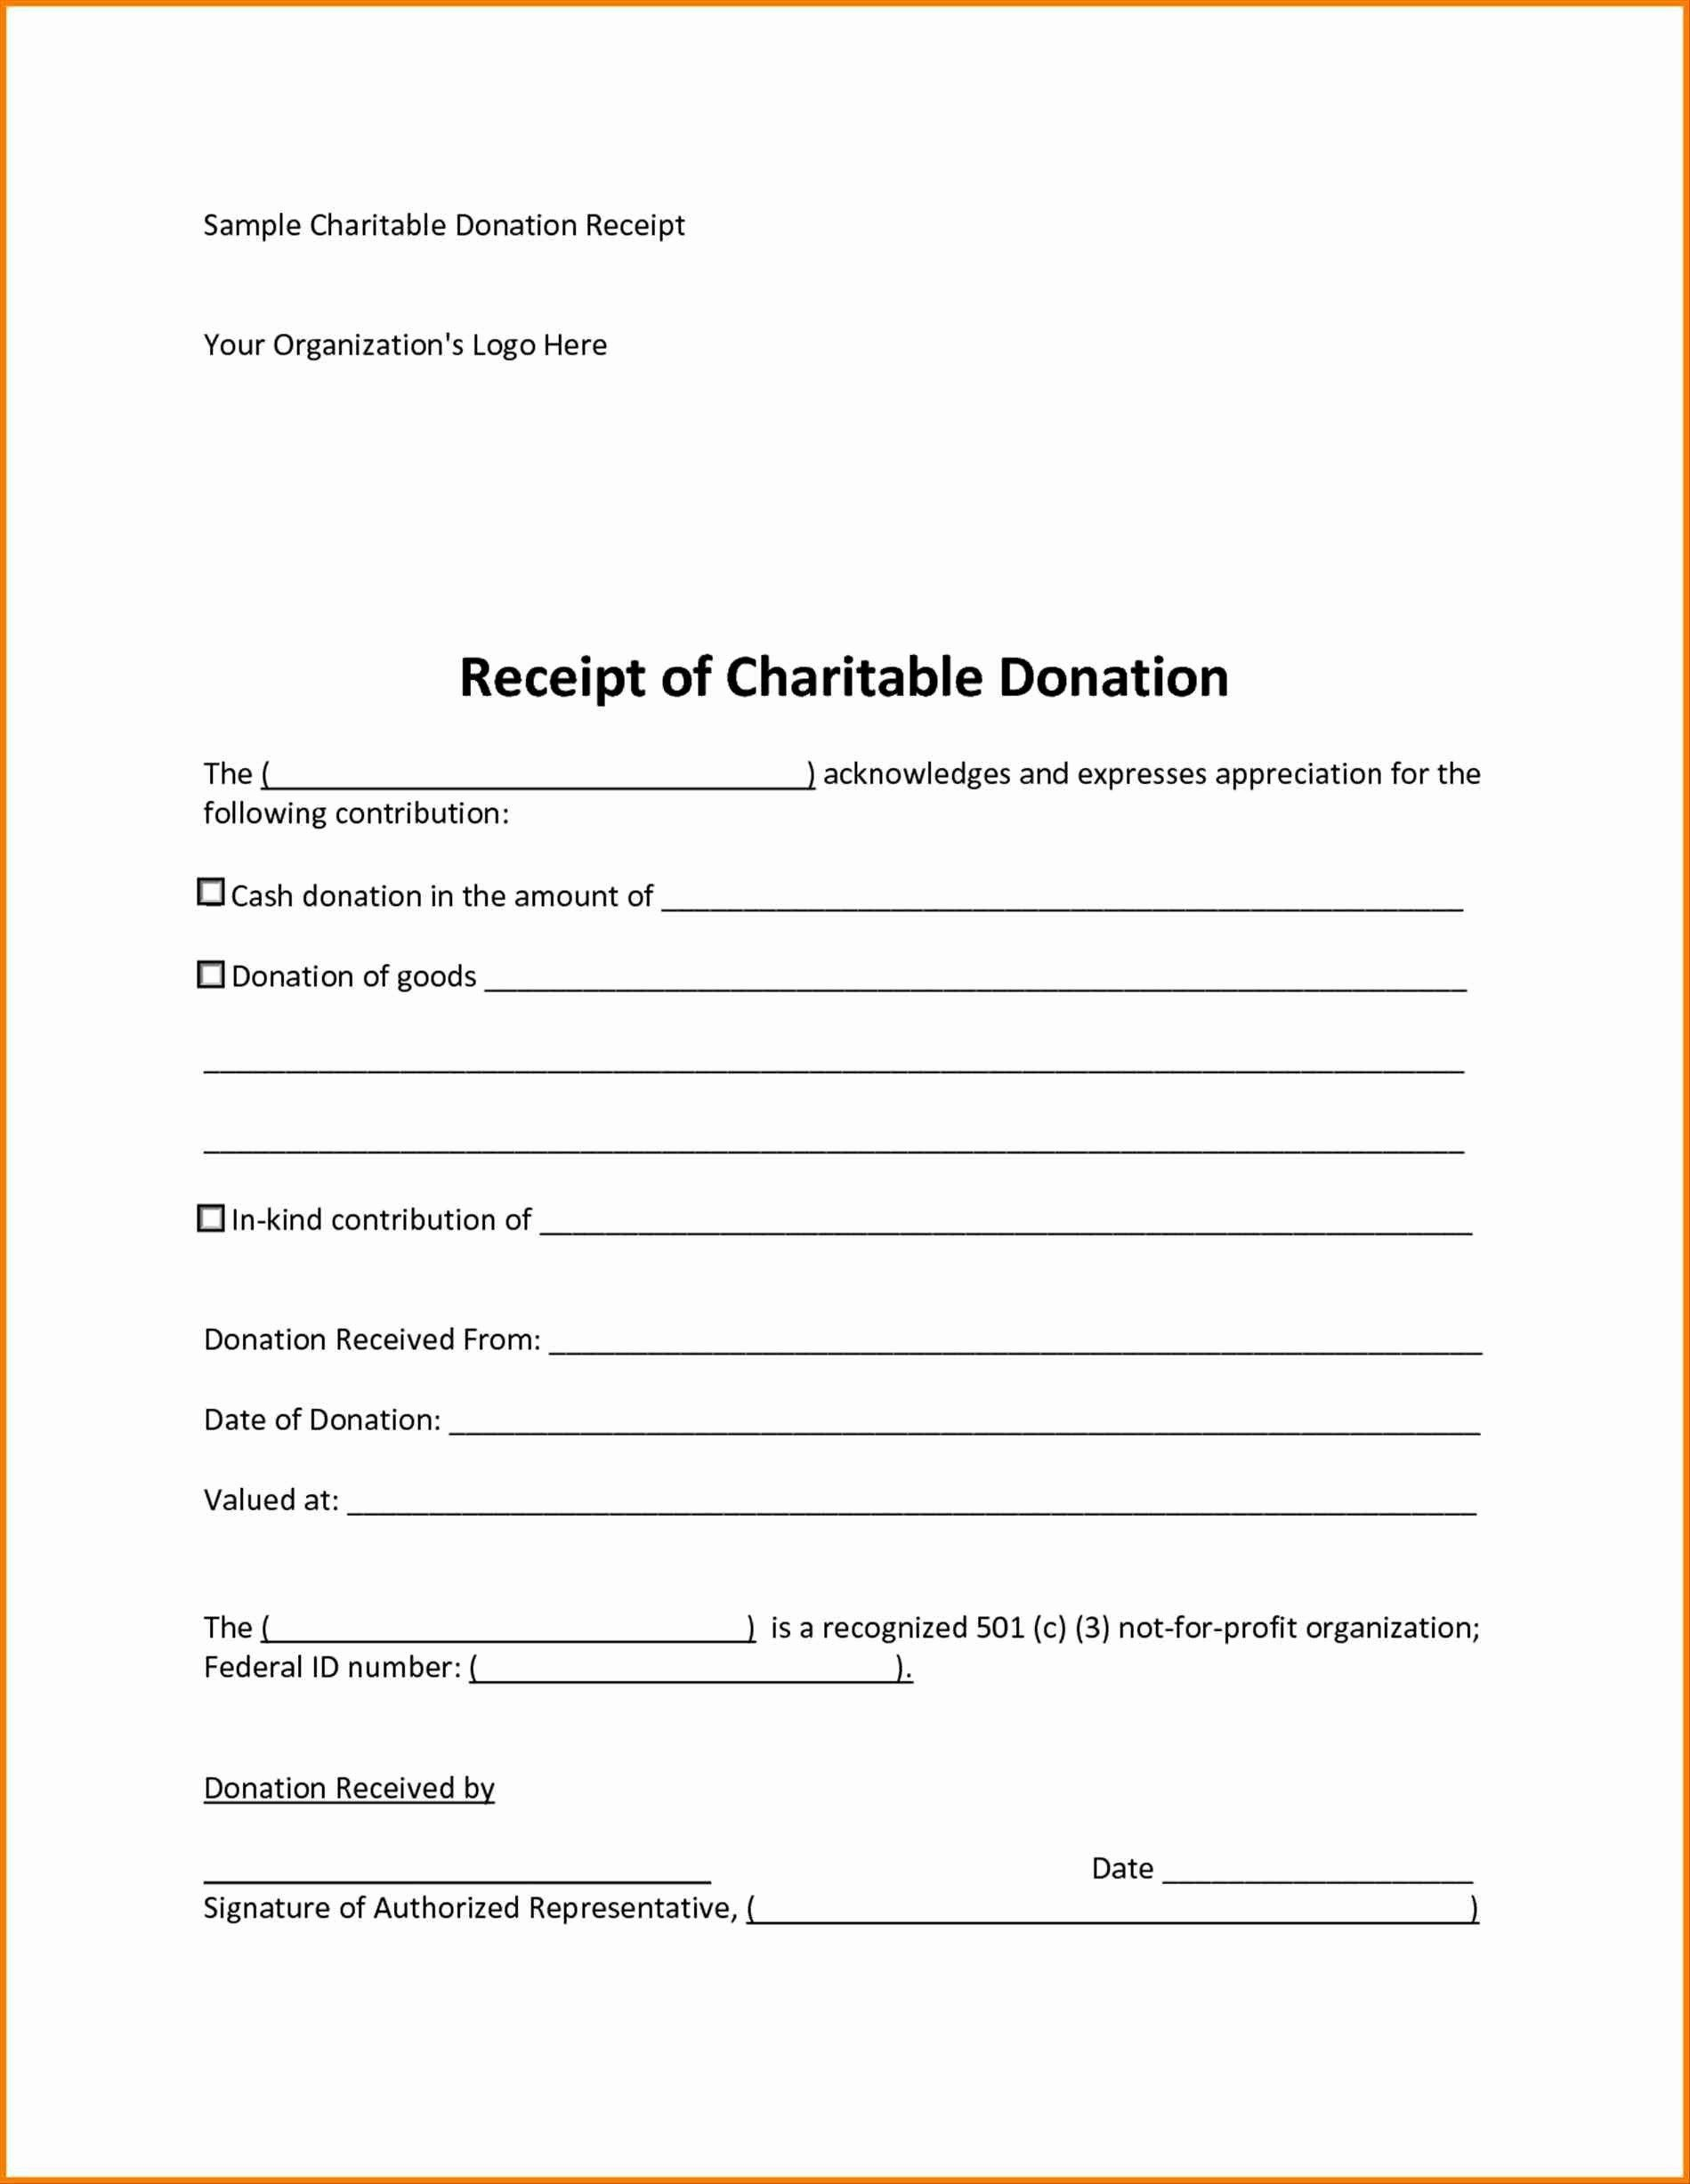 007 Magnificent Tax Donation Receipt Template Idea  Canadian Charitable Letter Church DeductionFull